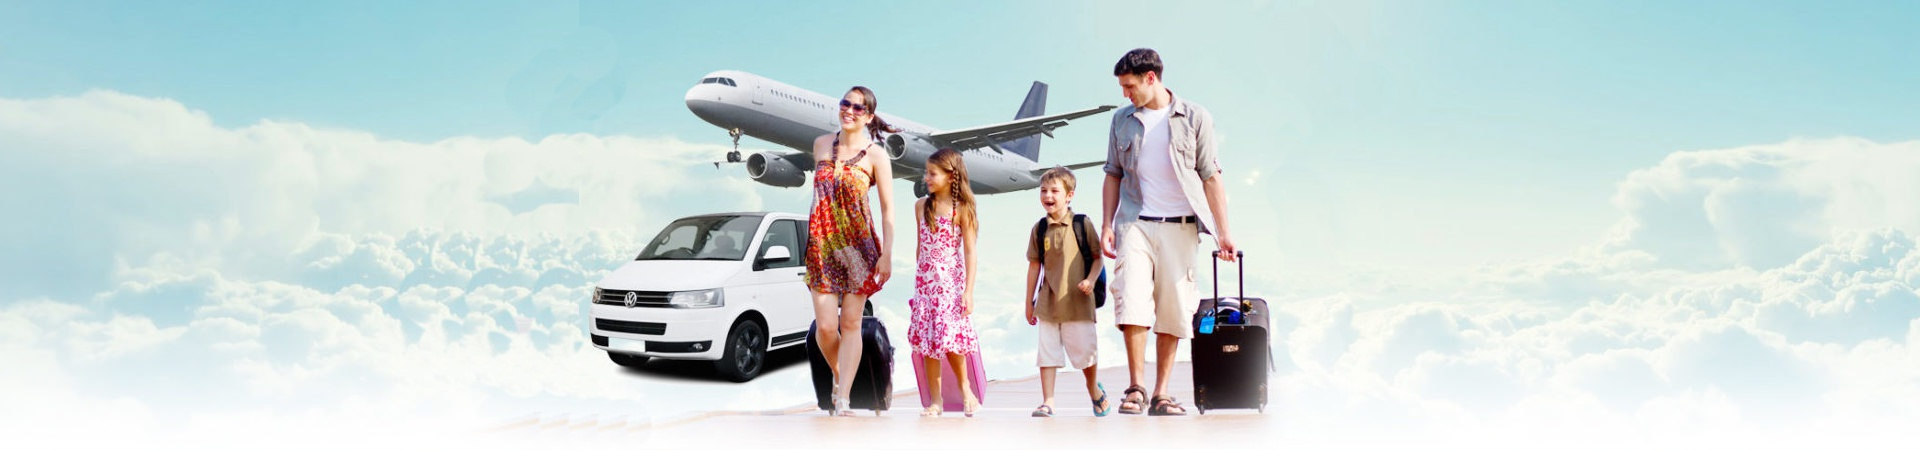 Phuket Airport Transfers to Hotels in Patong, Khao Lak, Surin, Kamala, Kata beach